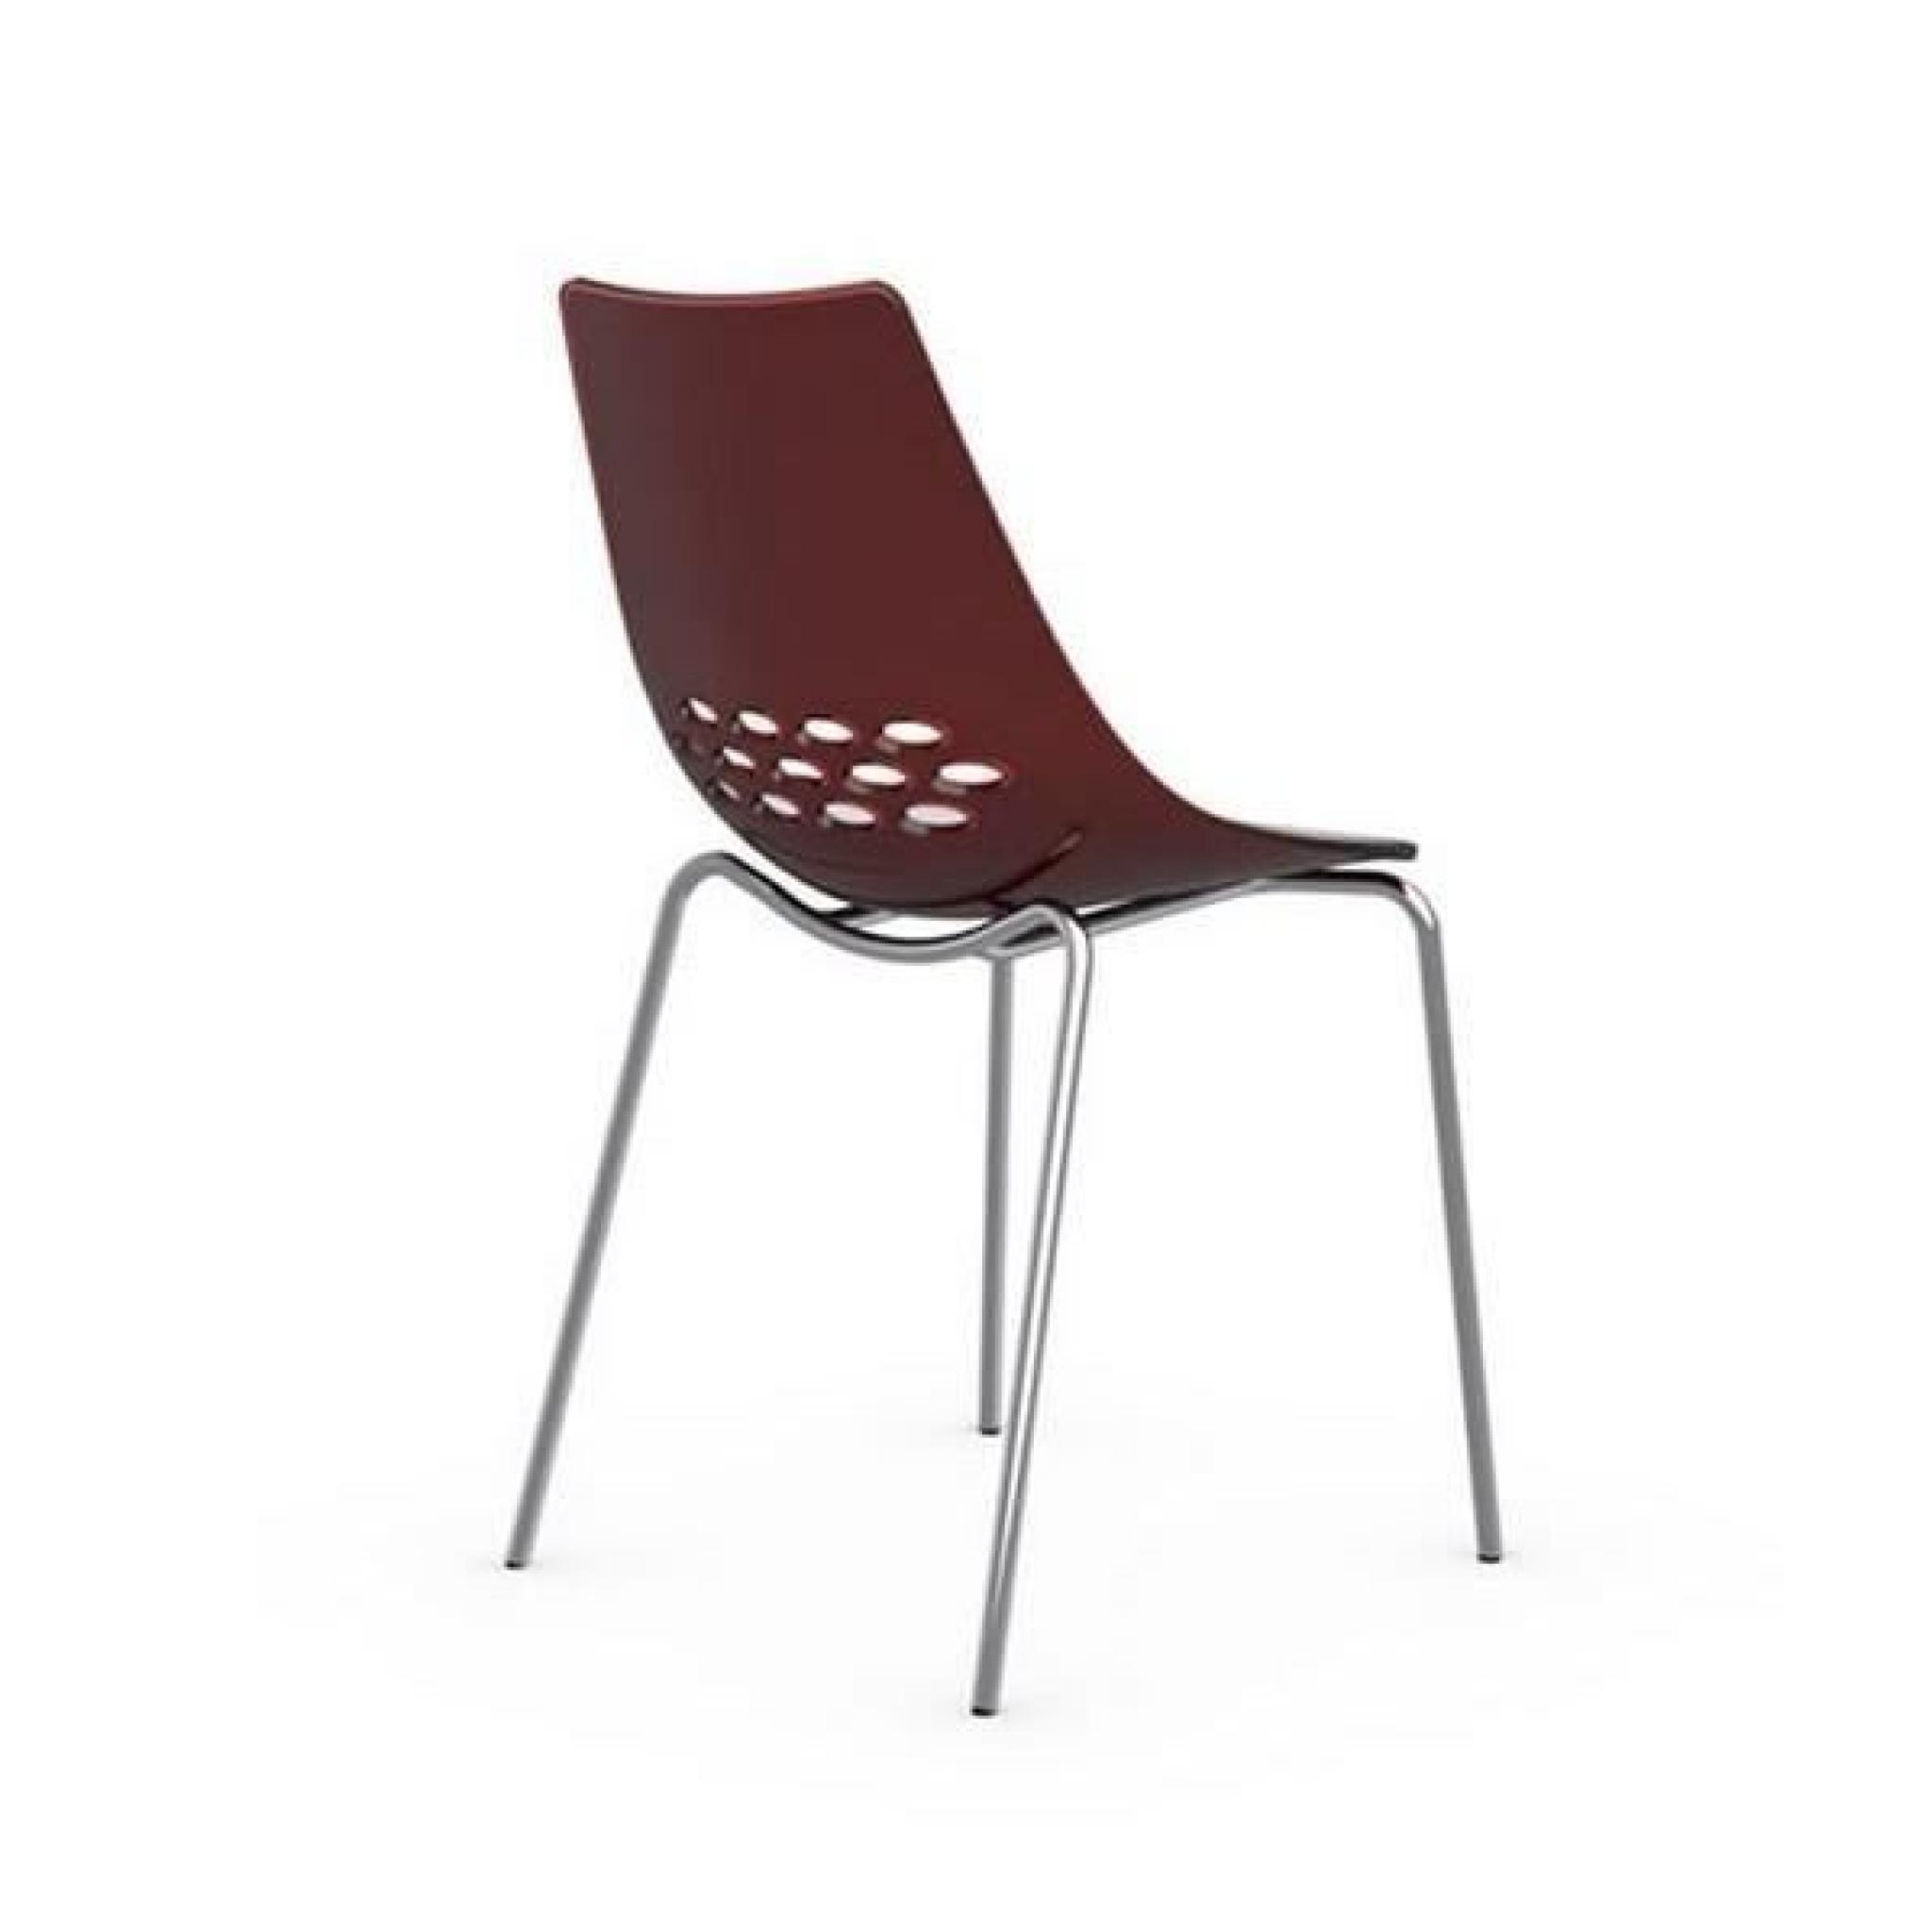 Chaise design jam blanche brillante et rouge transparent de calligaris acha - Chaise rouge design pas cher ...